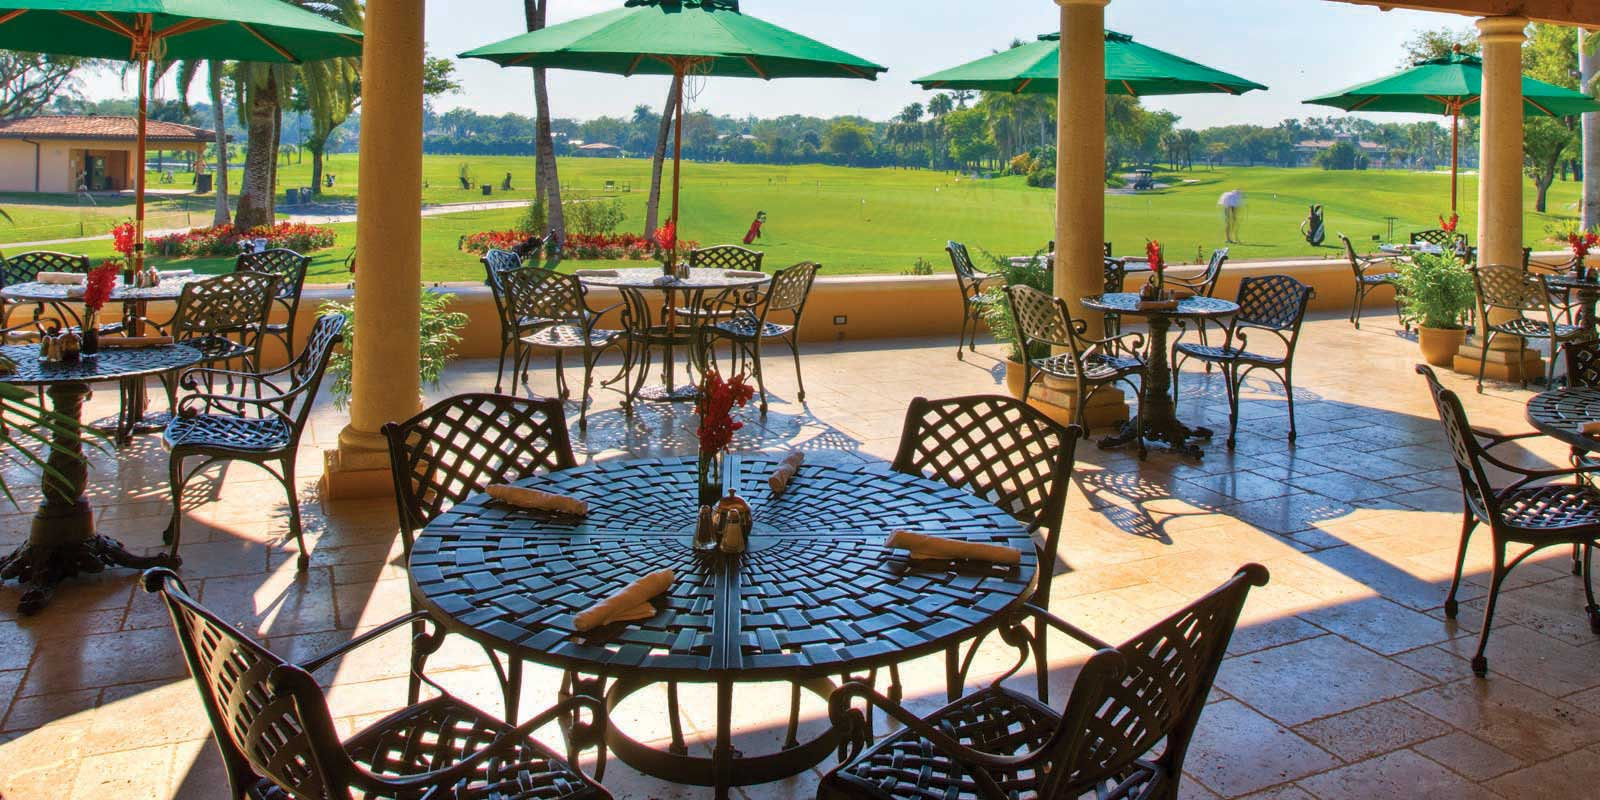 19th Hole Sports Bar Restaurant and Grill